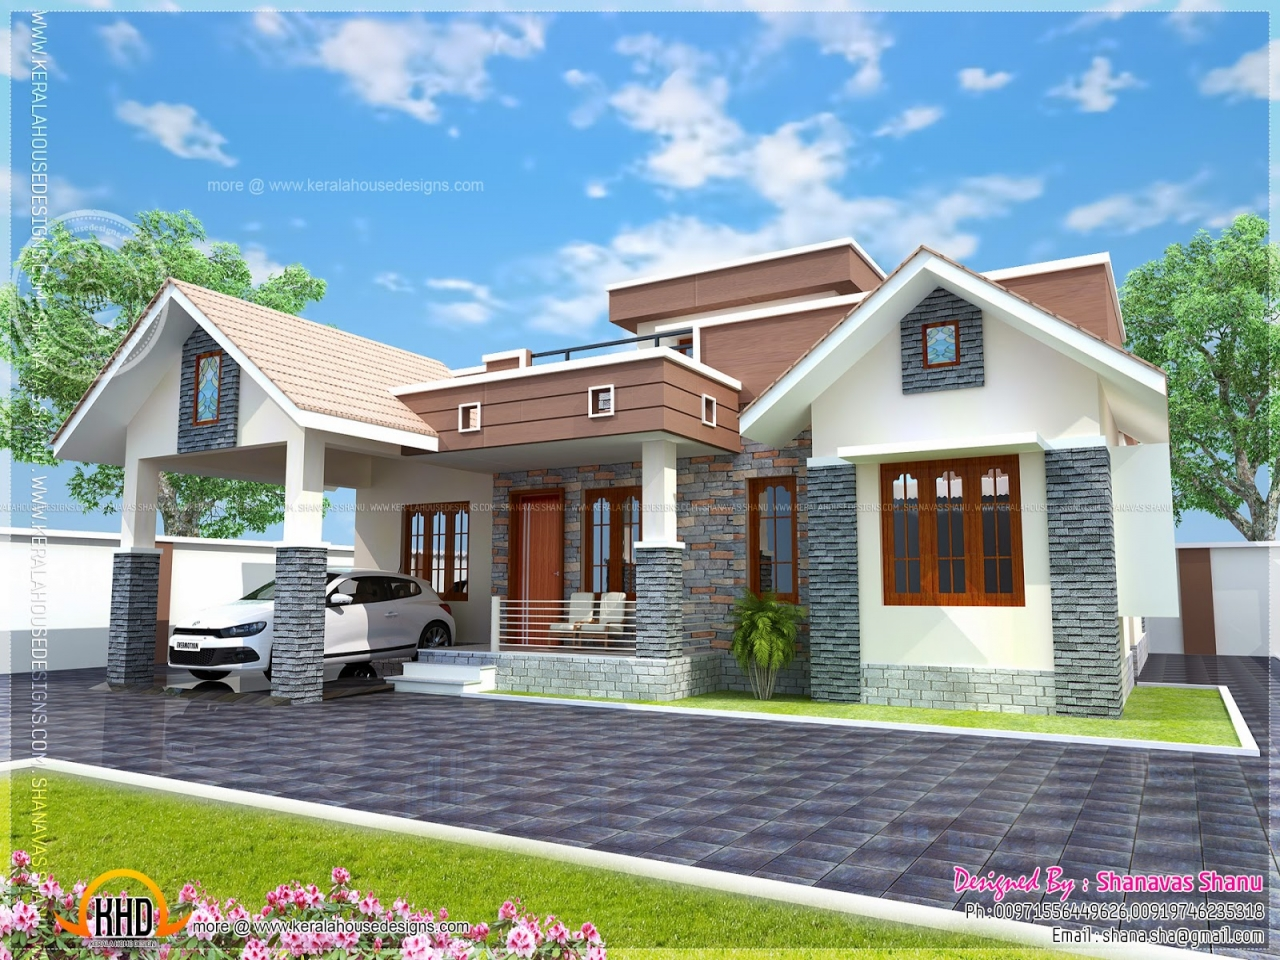 D Front Elevation Of Small Houses : Small house elevation design cottage front